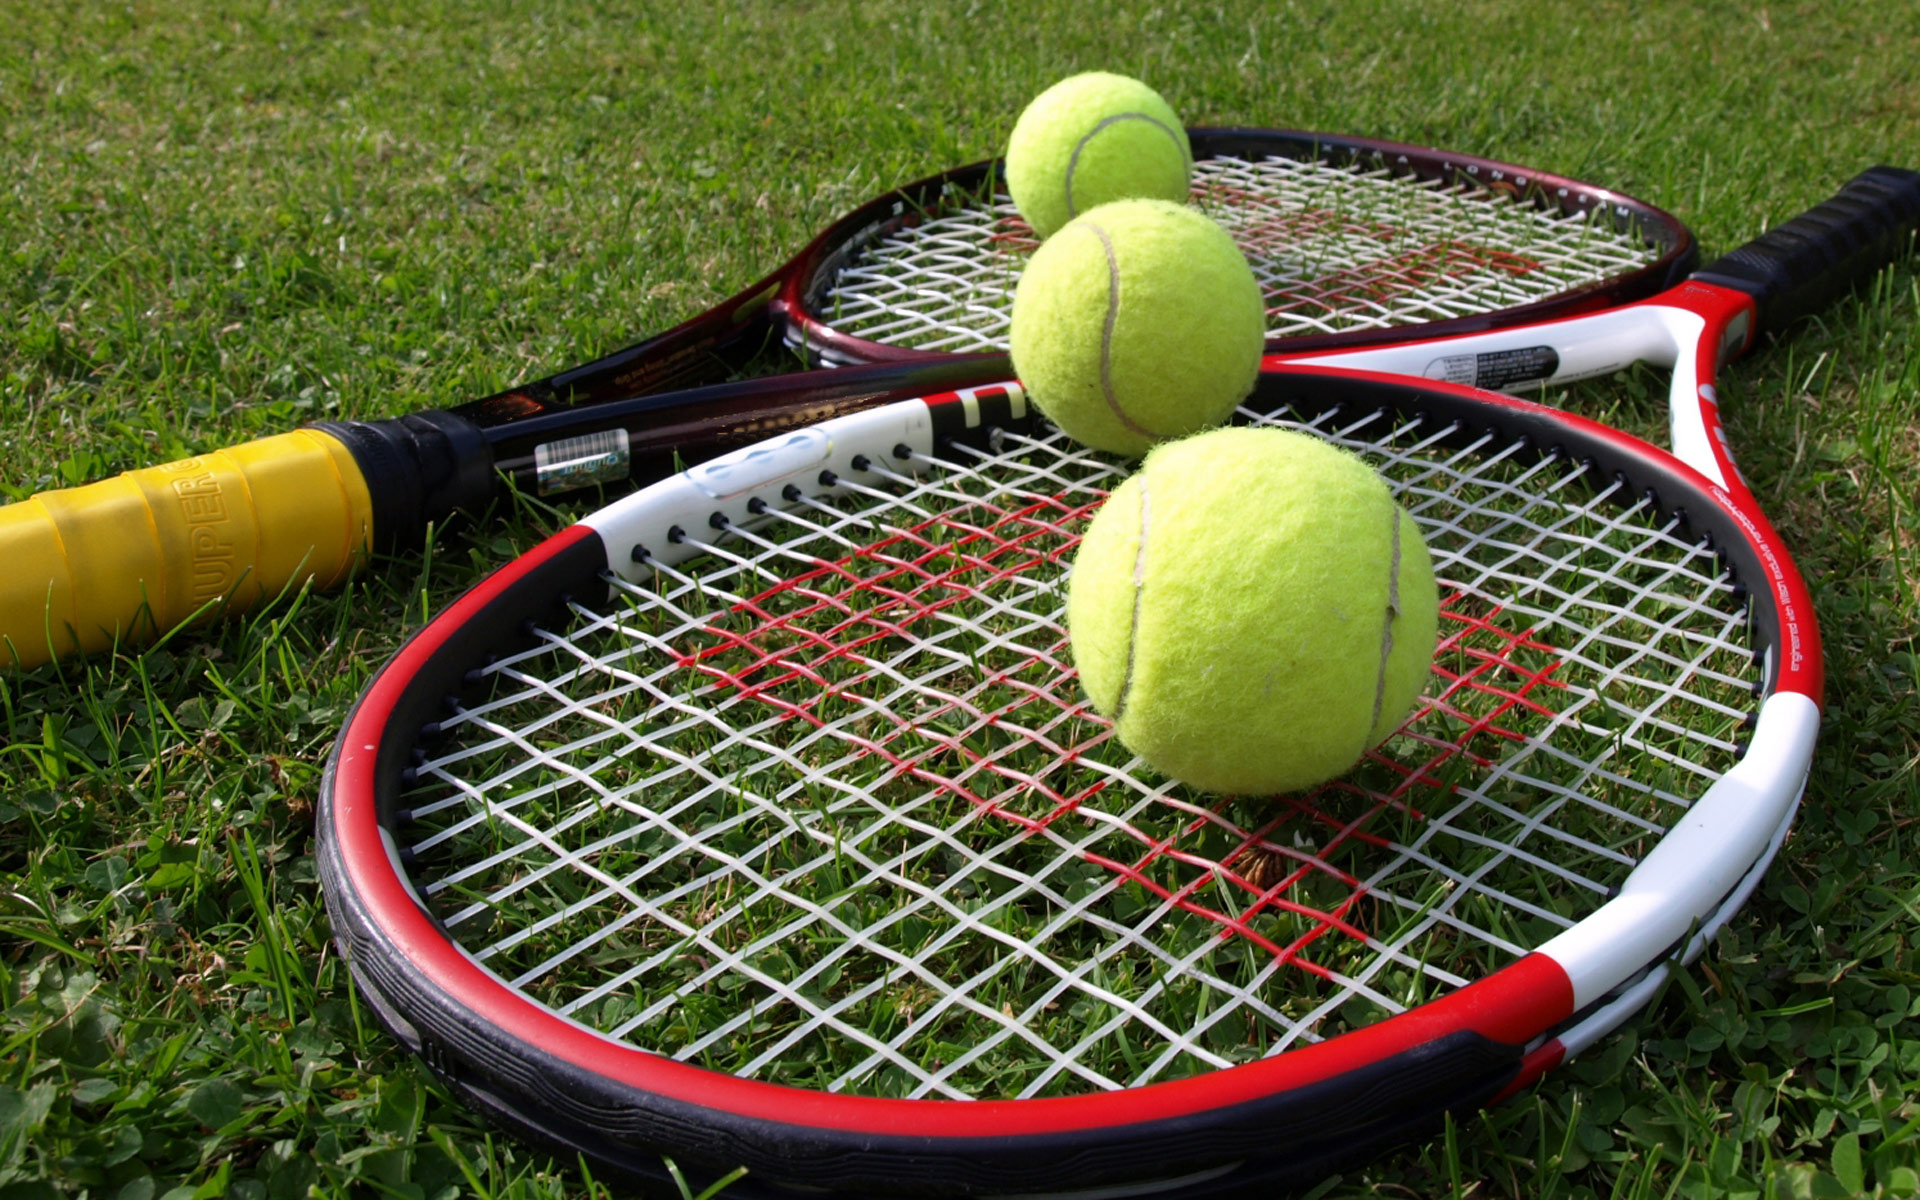 Download Tennis Rackets Hd Pictures Wallpaper 65176 1920x1200 Px High Definition Wallpaper